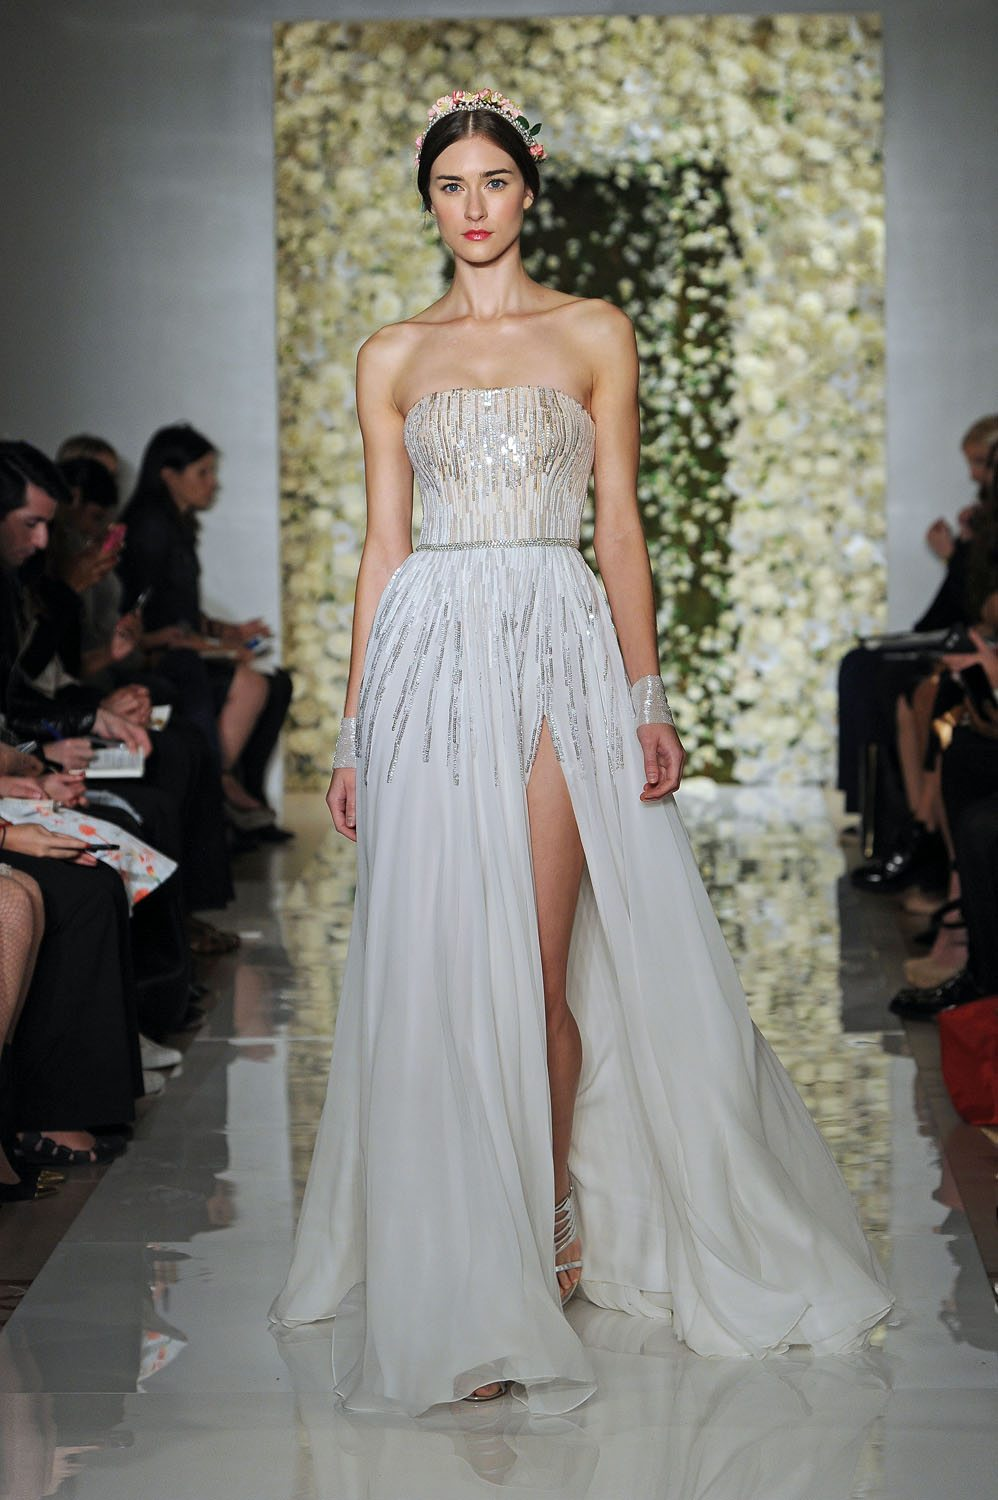 The Top Wedding Dress Trends For Fall 2015 Weddingbells